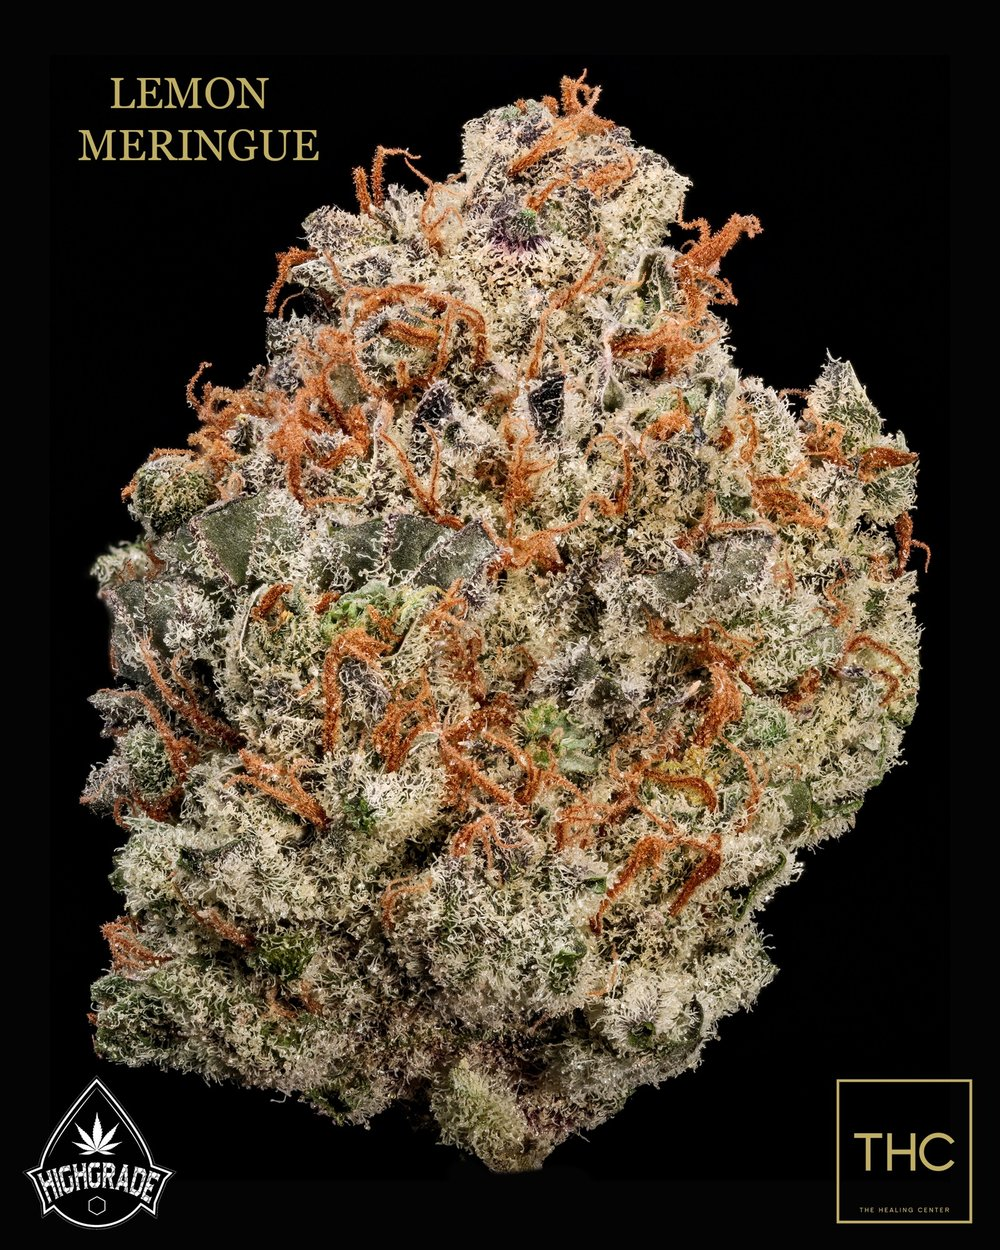 Lemon Meringue Highgrade 2018 THC.jpg